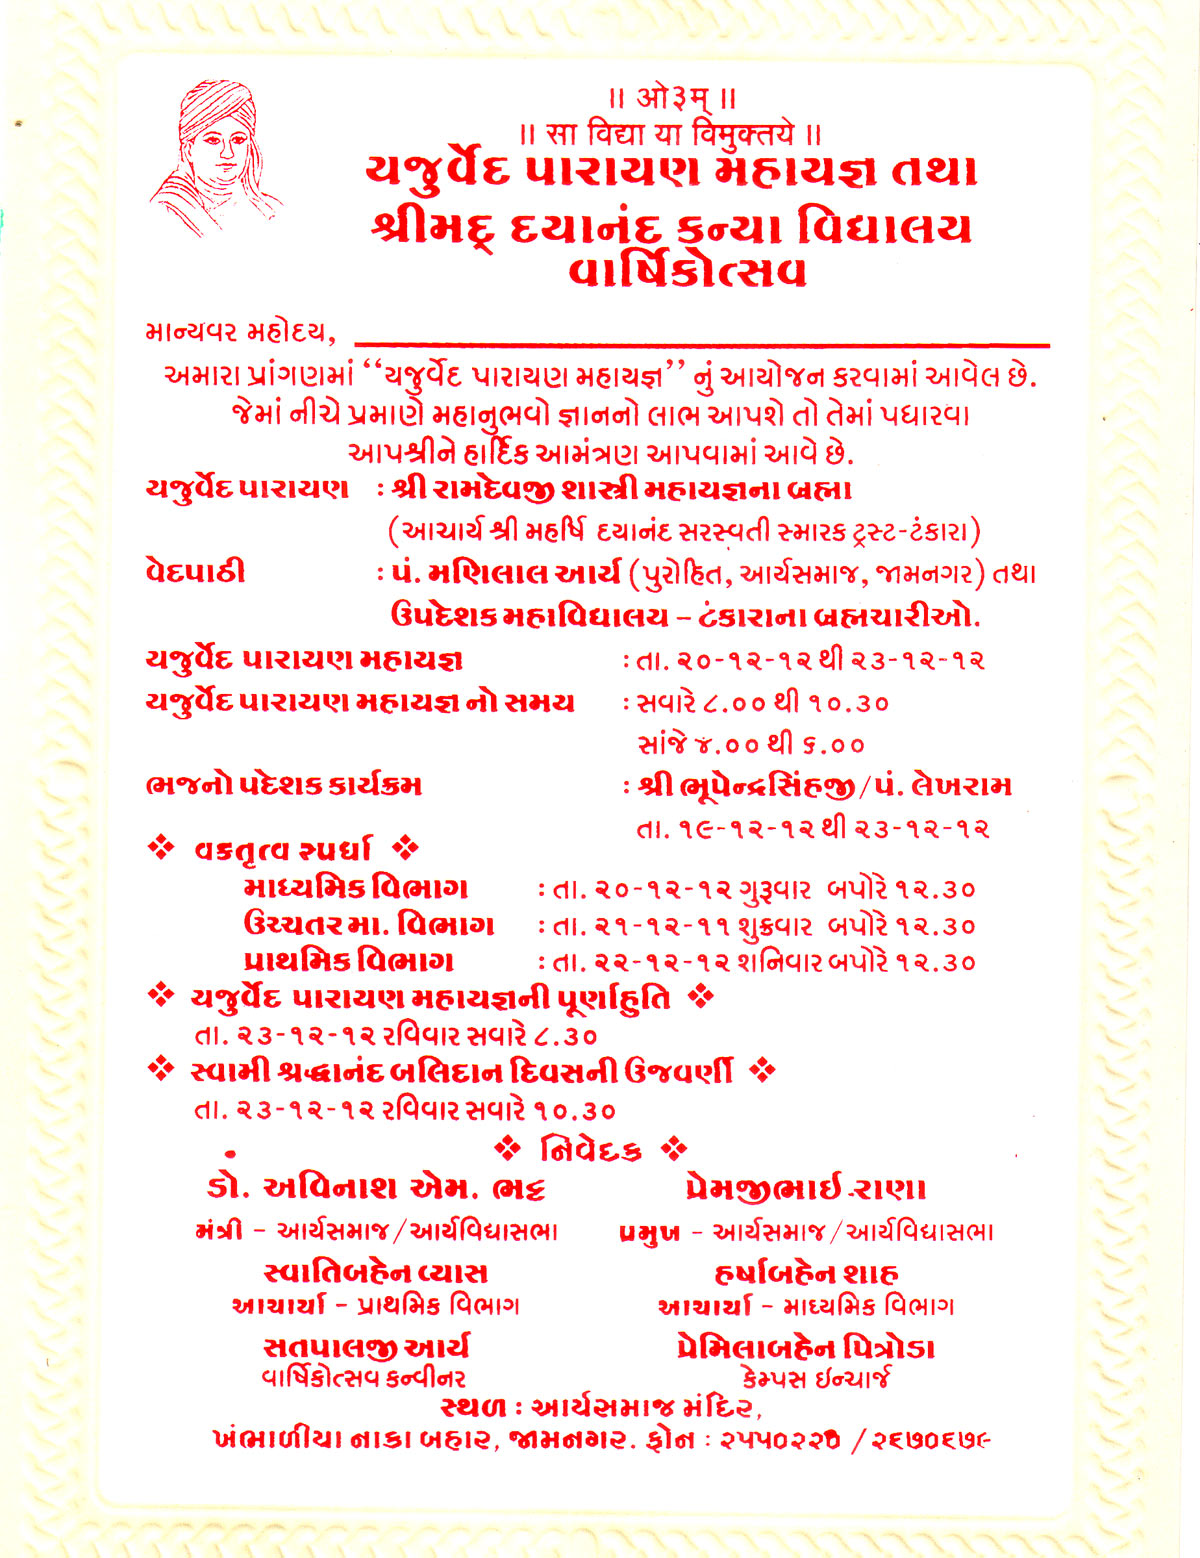 samachar letter in hindi